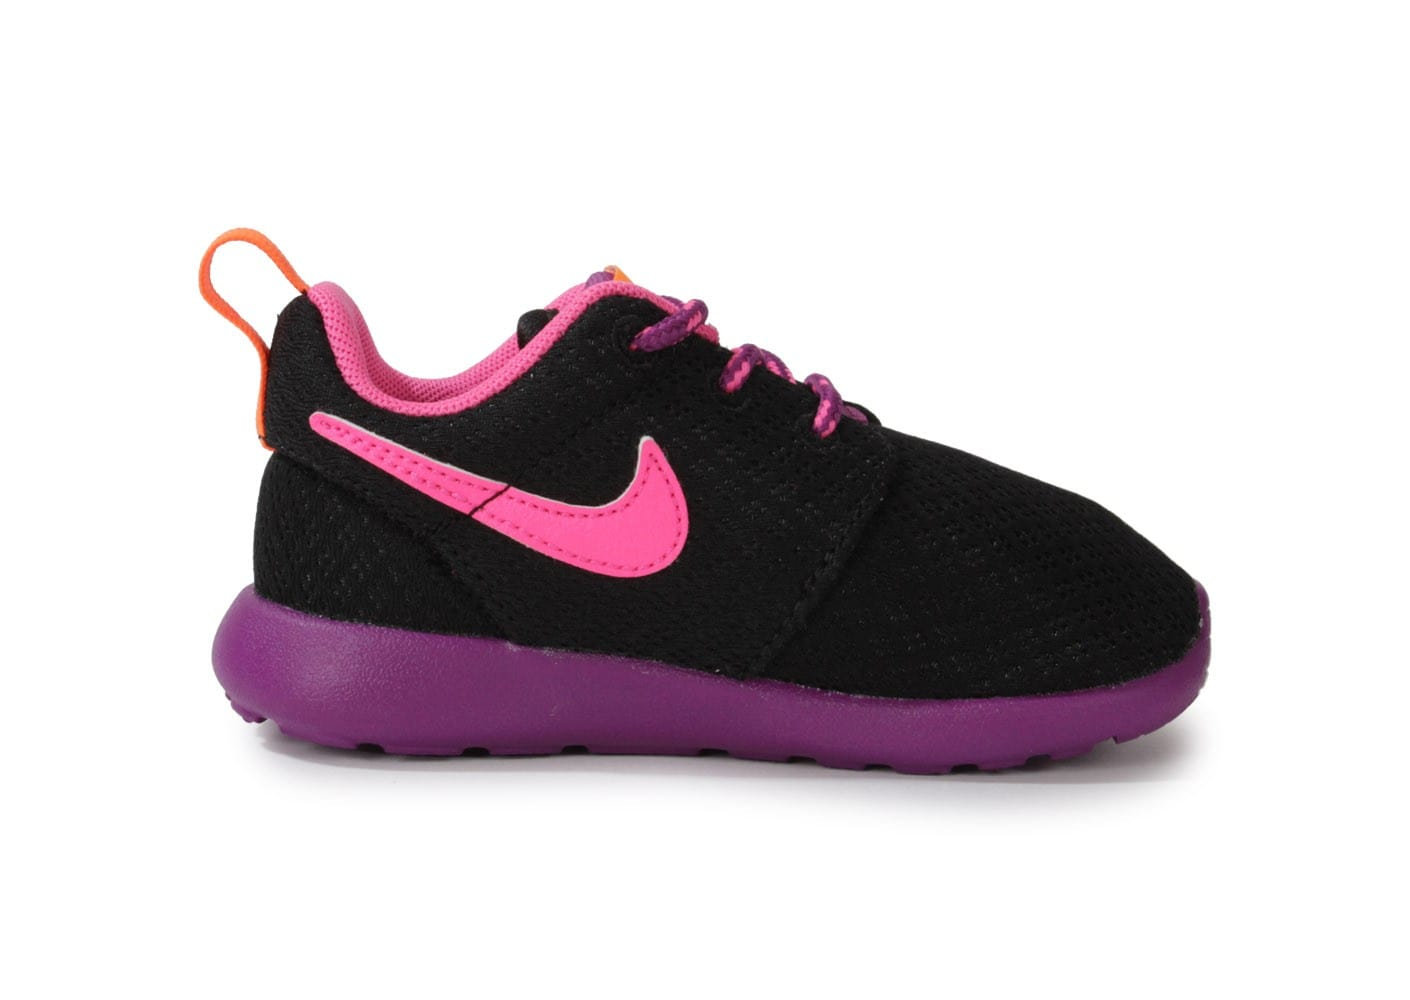 nike roshe run b b noire rose chaussures chaussures. Black Bedroom Furniture Sets. Home Design Ideas